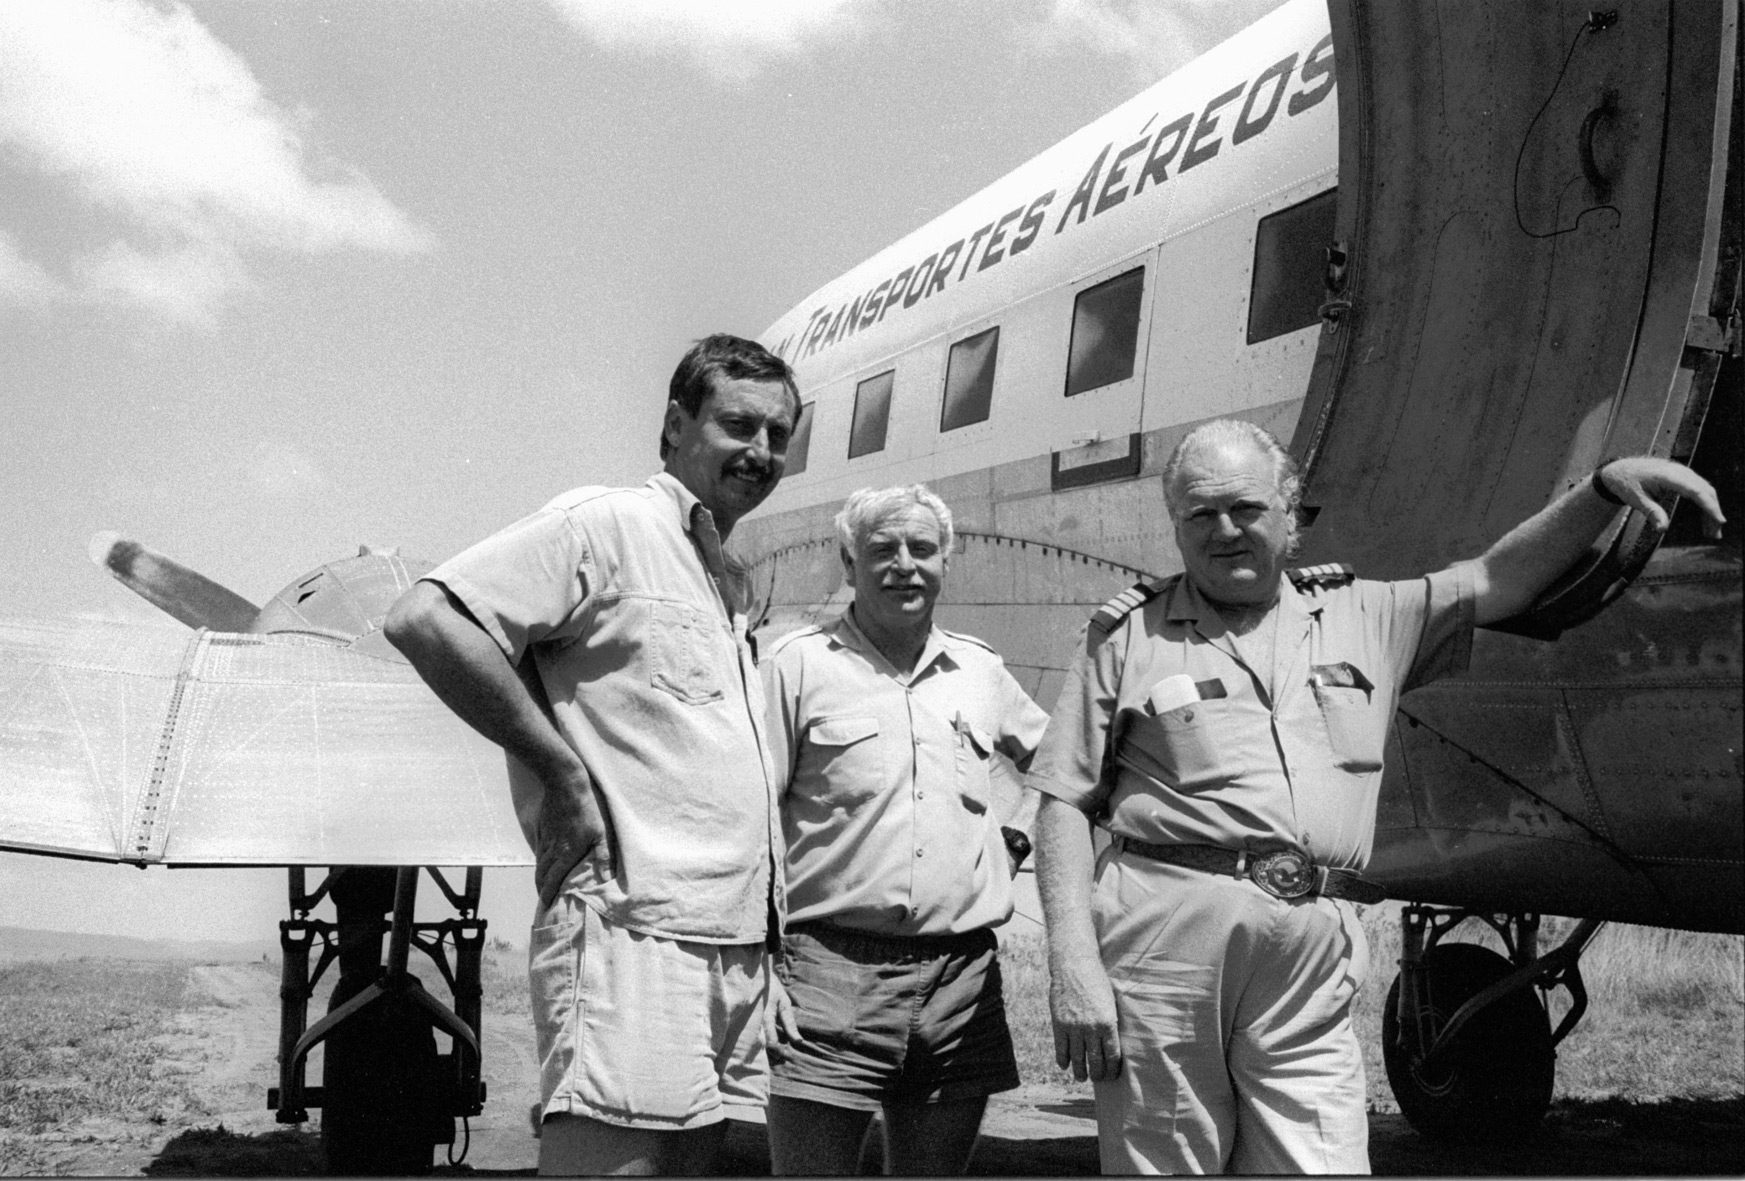 Mozambique, Sofala province, Marínguè. November 1993. The crew of Scan Air DC-3 (registration number: C/N 19006 C9-STE) during an airlift of emergency goods for displaced population. From left to right: Brian Nordan, John Murphy and chief pilot and Scan Air CEO Oscar Hermannson. The same team fatally crashed with this Douglas DC-3 near Molema in Tete province on 22 November 1993. Only John Murphy survived.